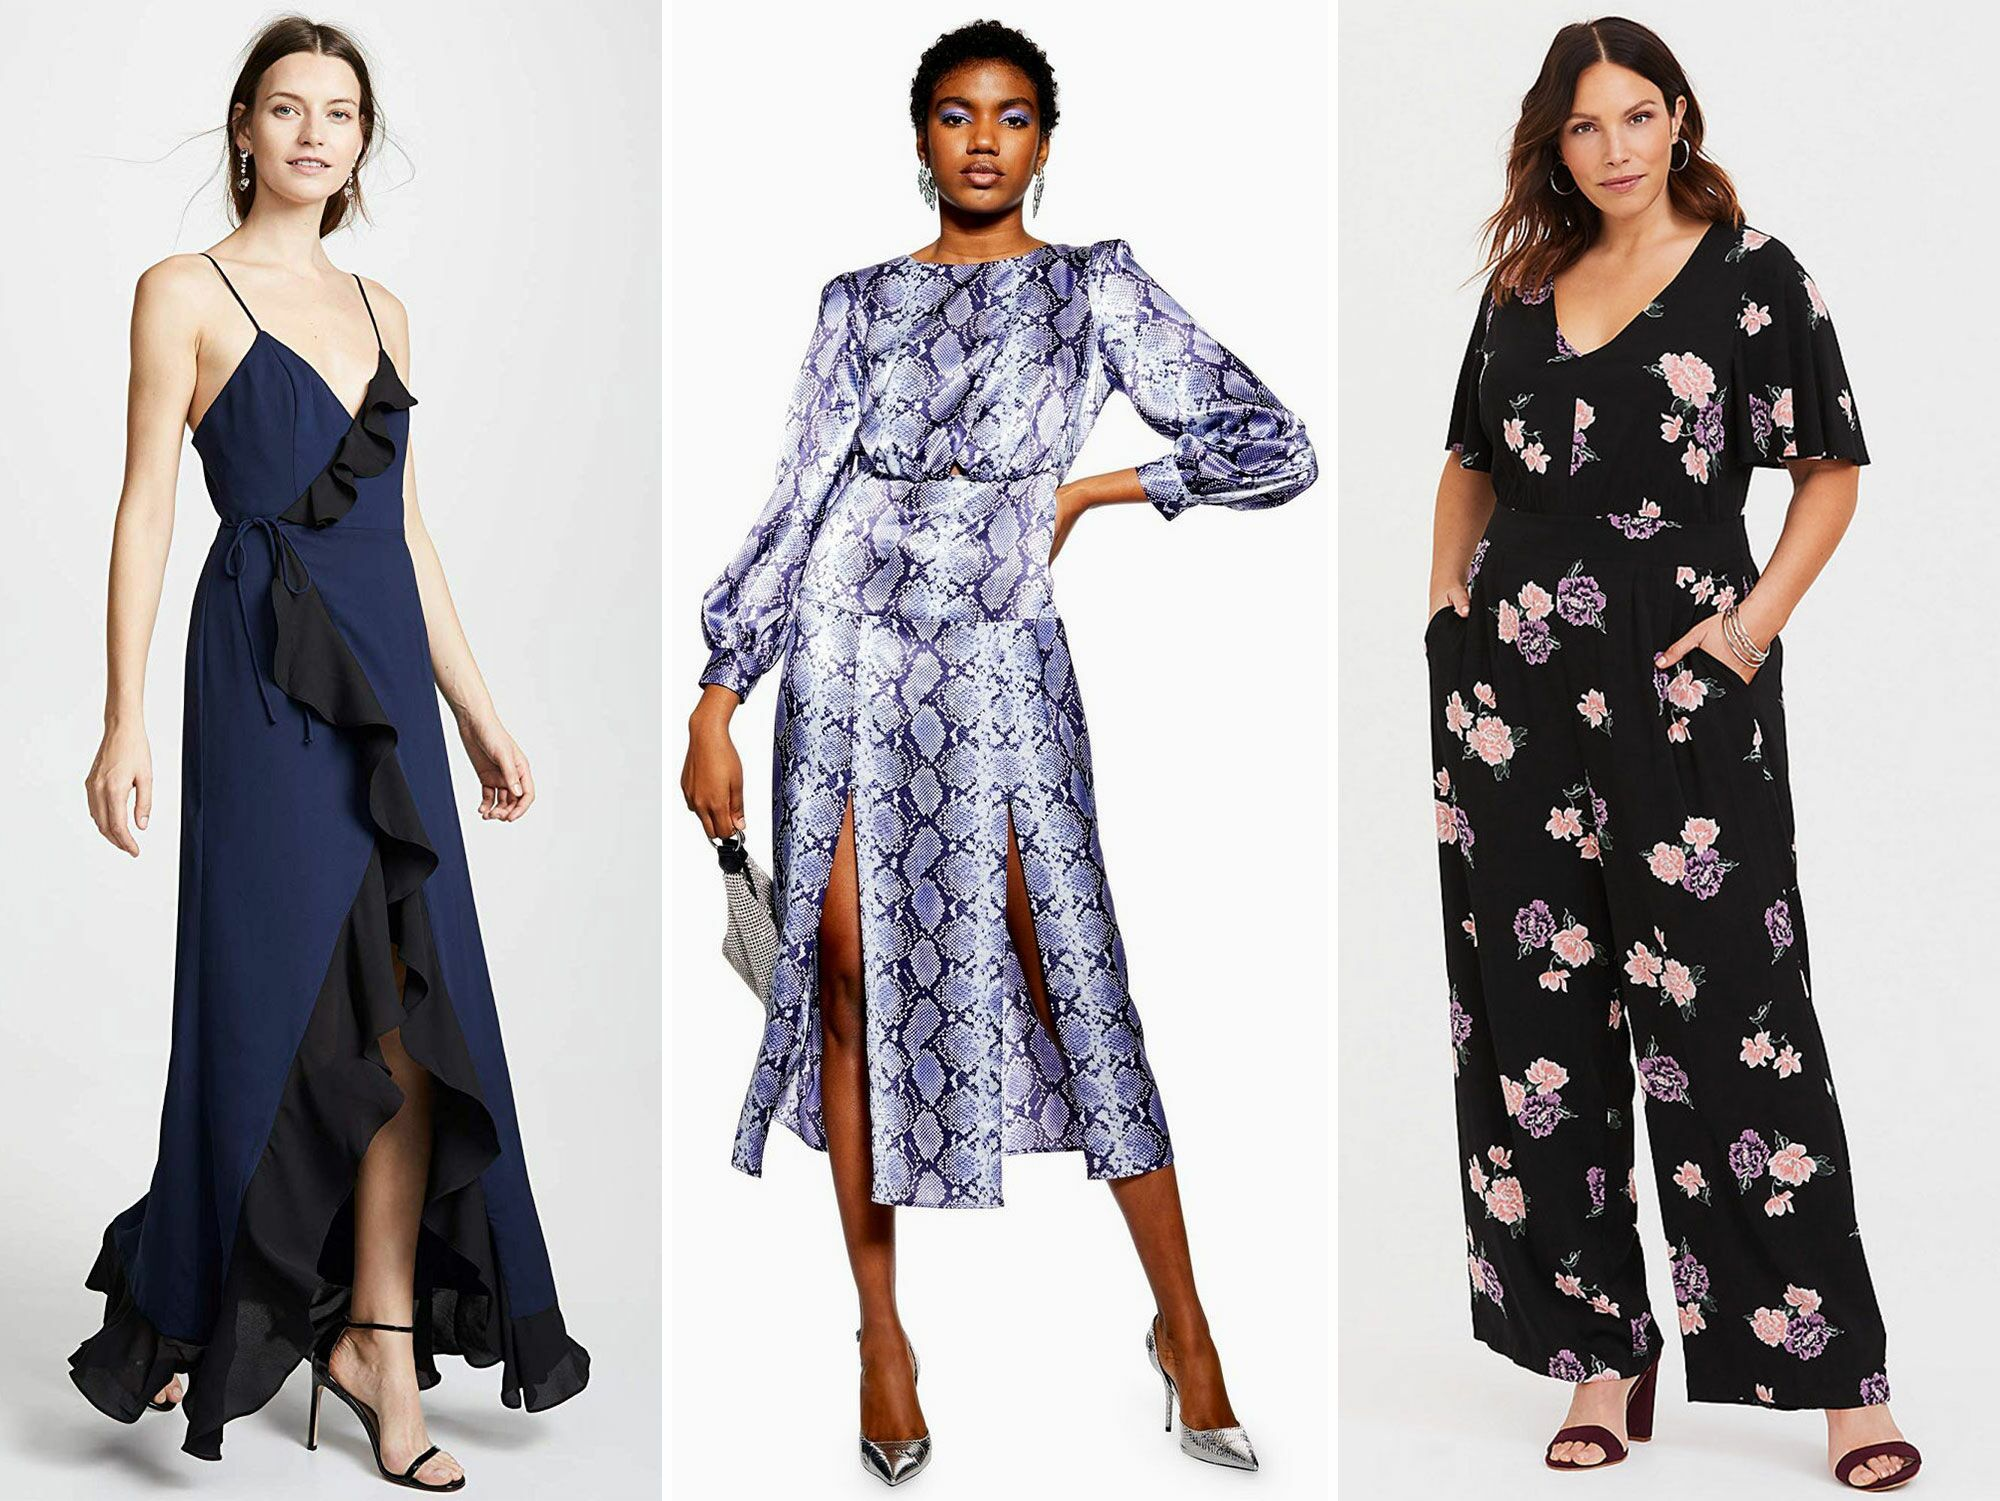 45 Wedding Guest Dresses For Spring,What Dress To Wear To A Wedding Reception